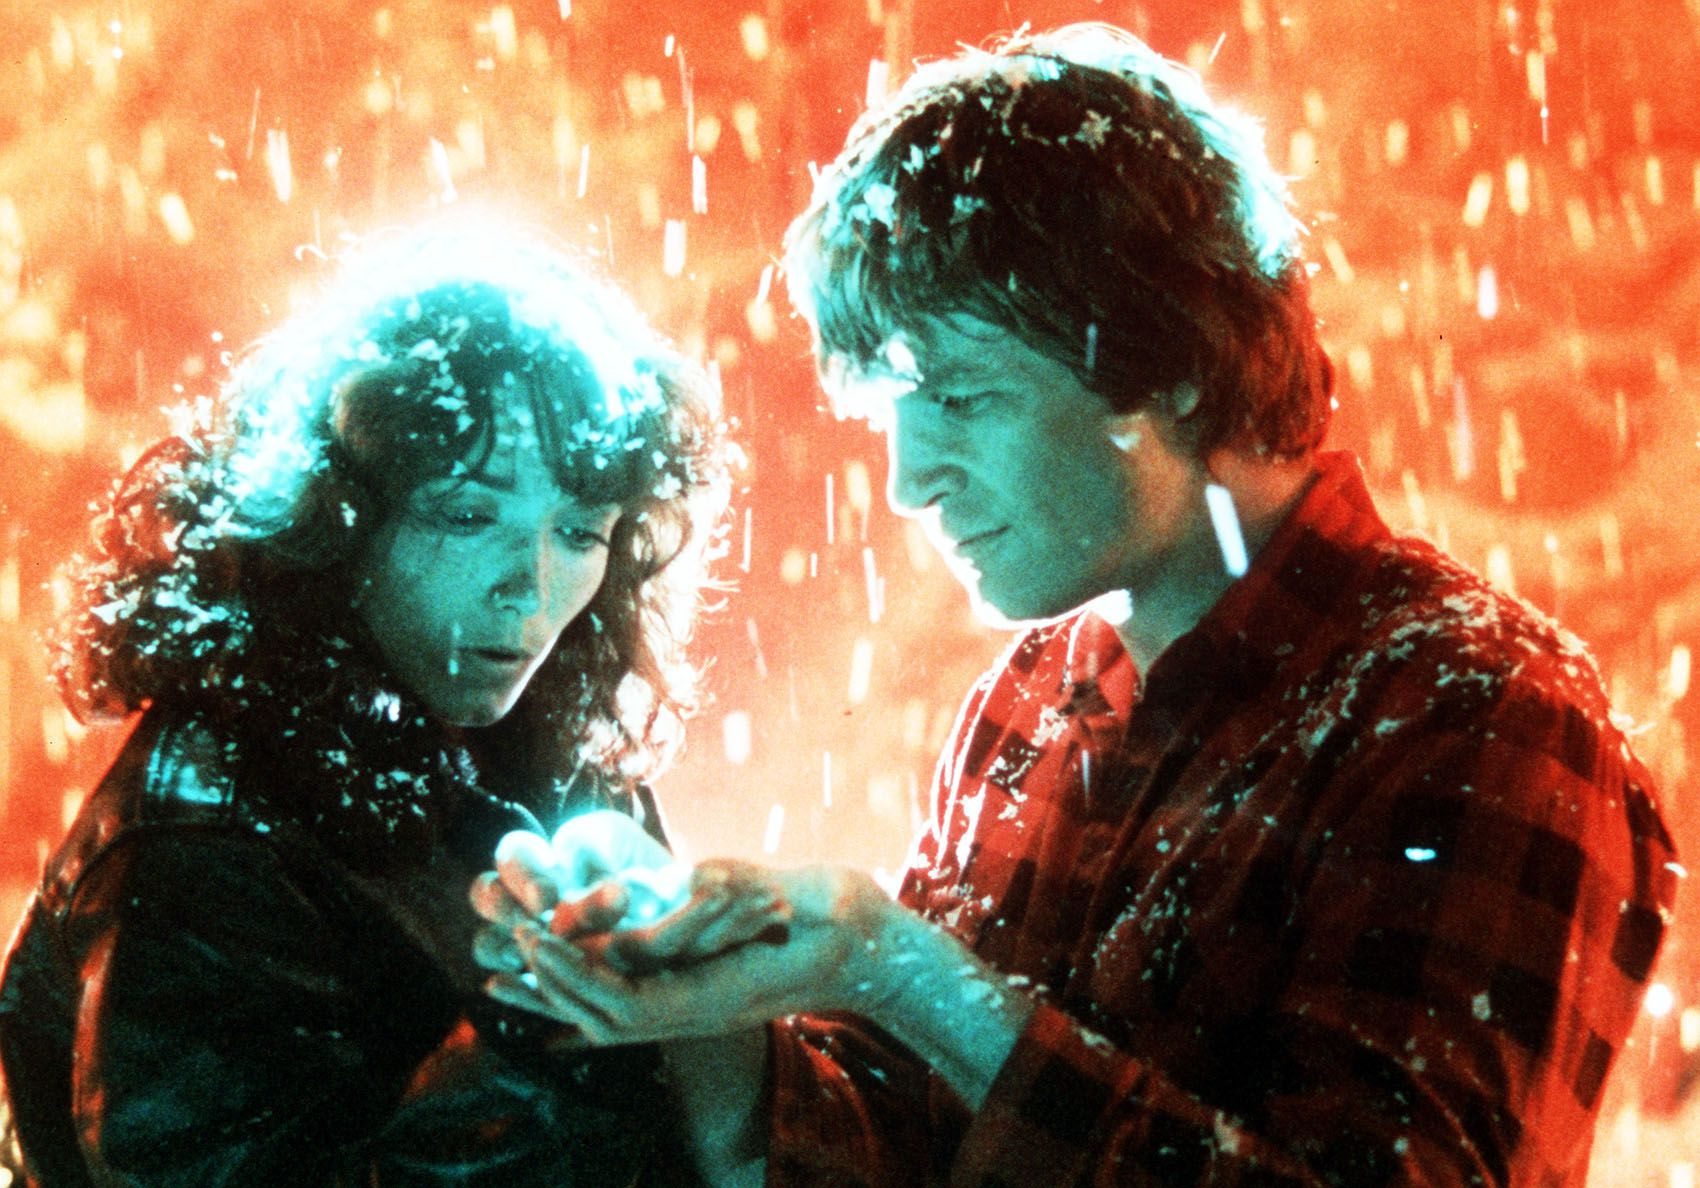 Jenny Hayden (Karen Allen) and Starman (Jeff Bridges) as he activates one of his balls in Starman (1984)